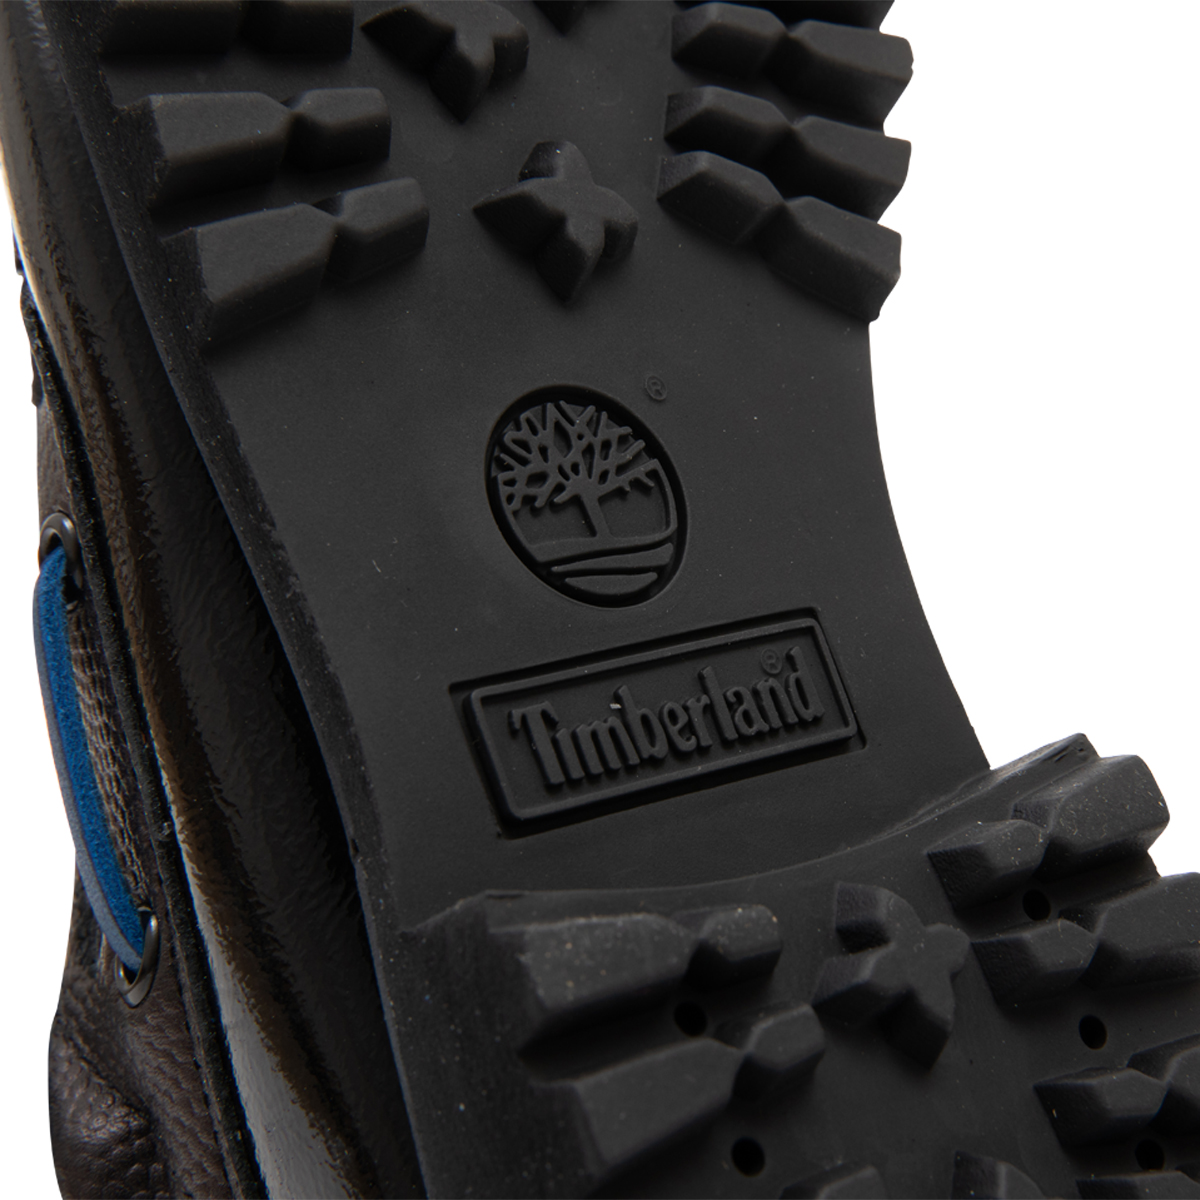 Timberland X Chinatown Market Authentic Lug Shoe